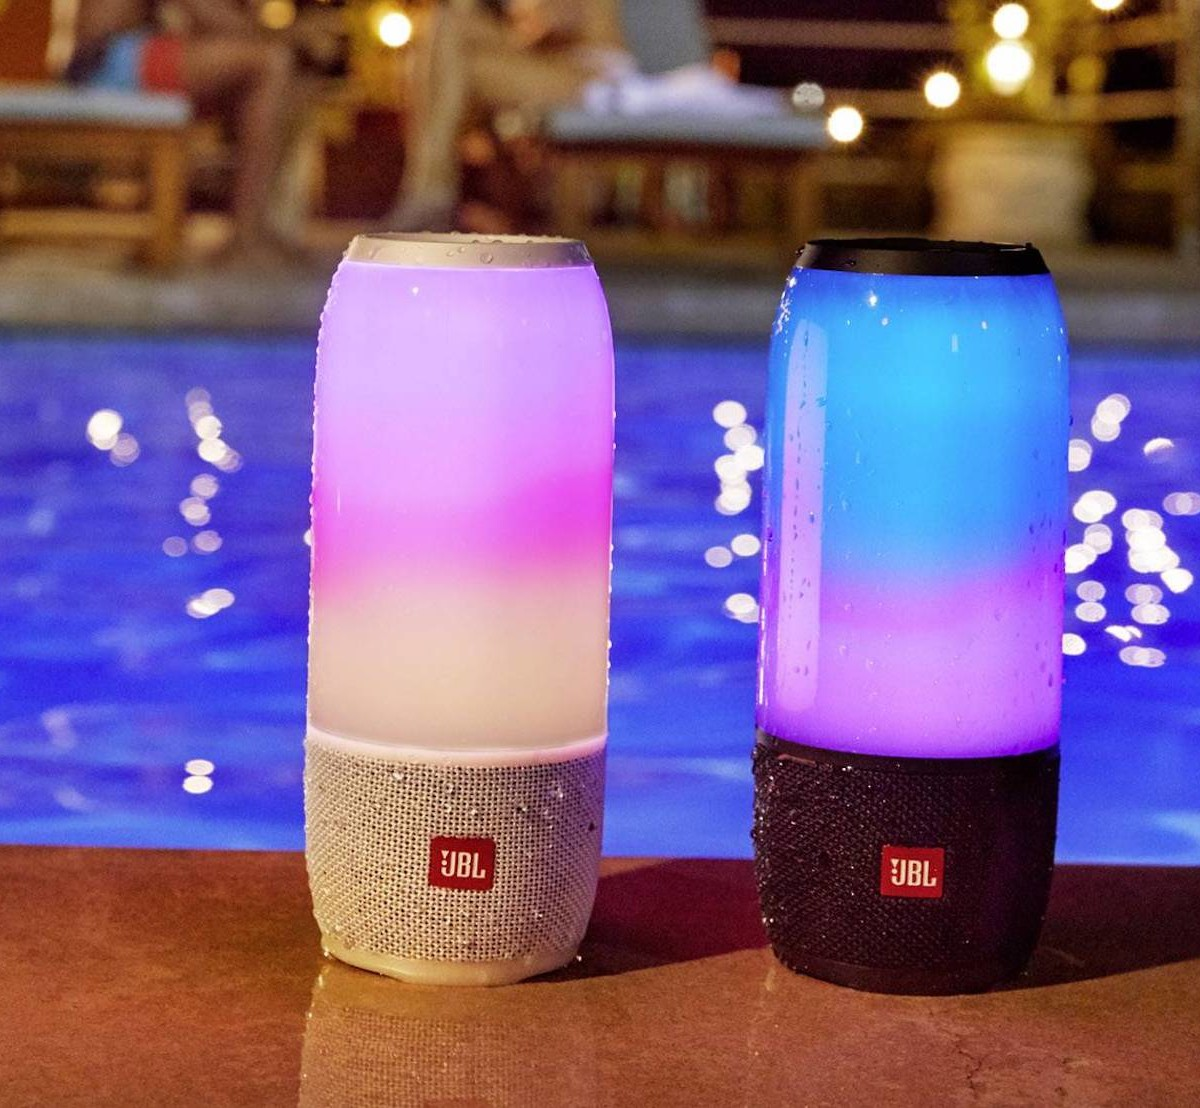 JBL Pulse 3 Bluetooth Portable Waterproof Speaker is completely dunkable